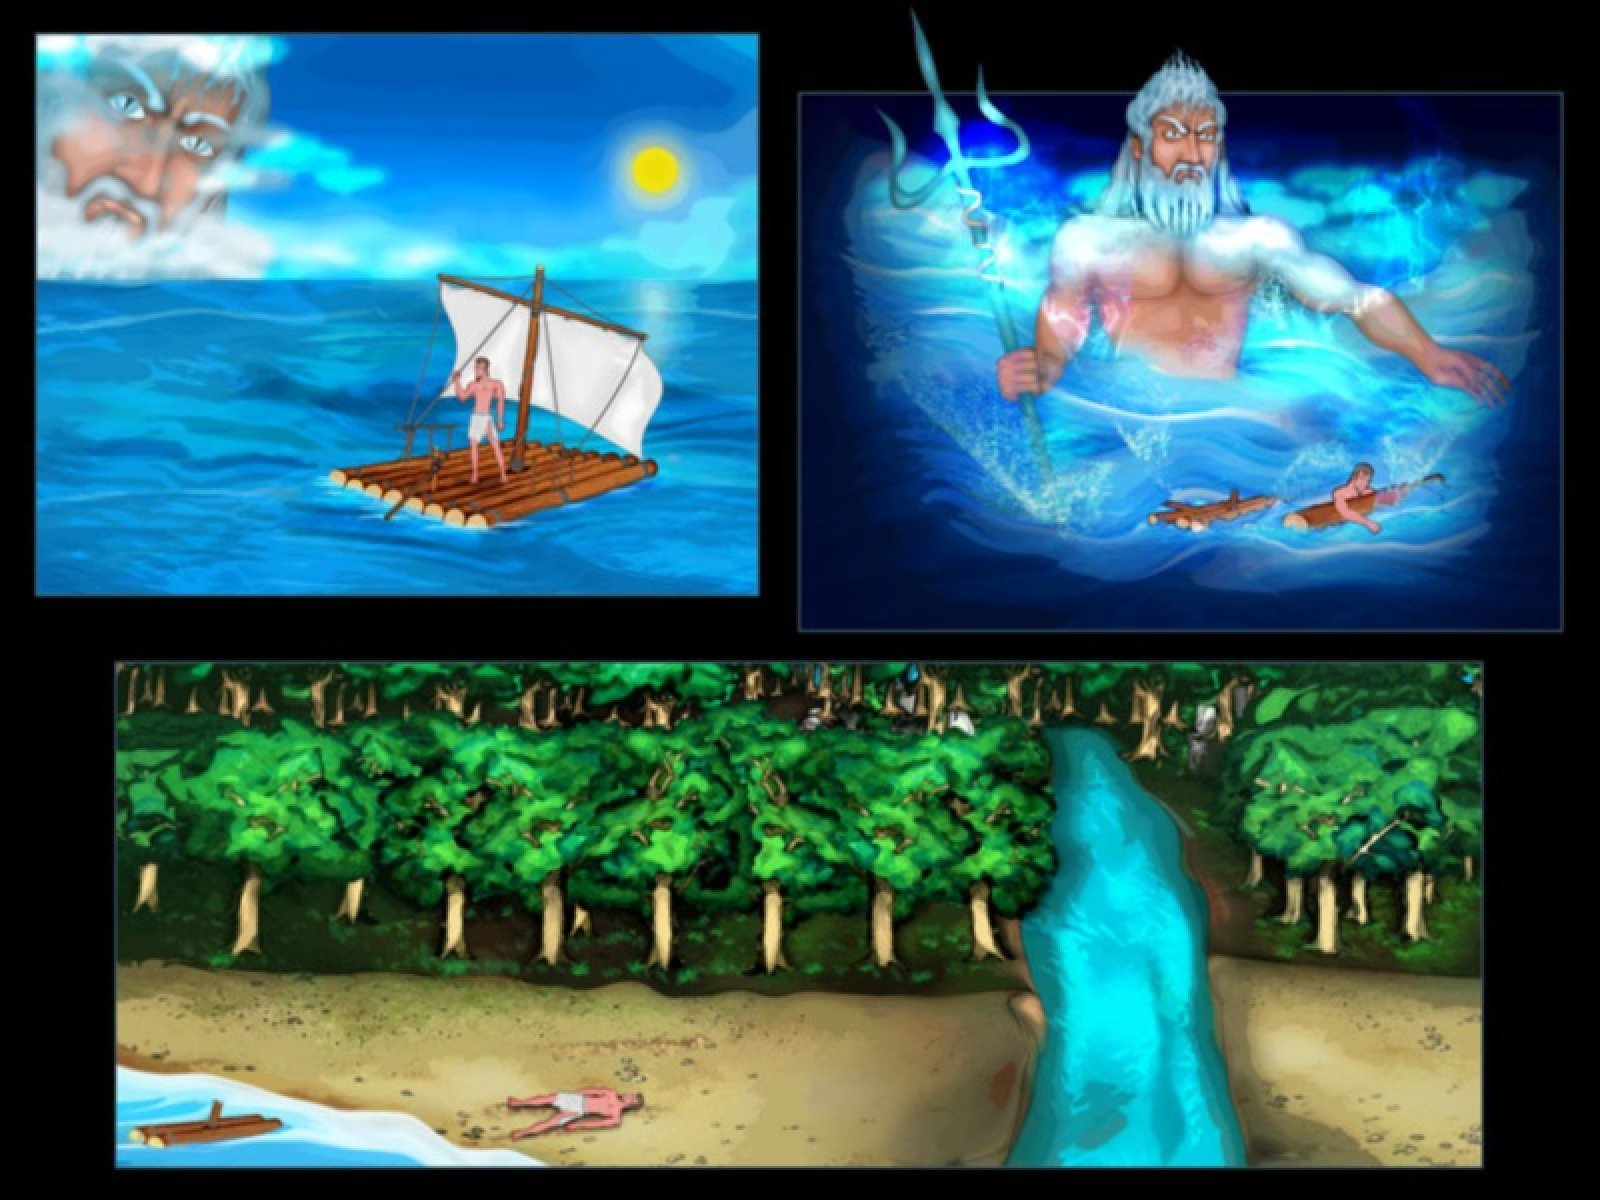 odysseus adventures in the odyssey Start studying the odyssey part 1: the adventures of odysseus, sailing from troy, the lotus eaters learn vocabulary, terms, and more with flashcards, games, and other study tools.